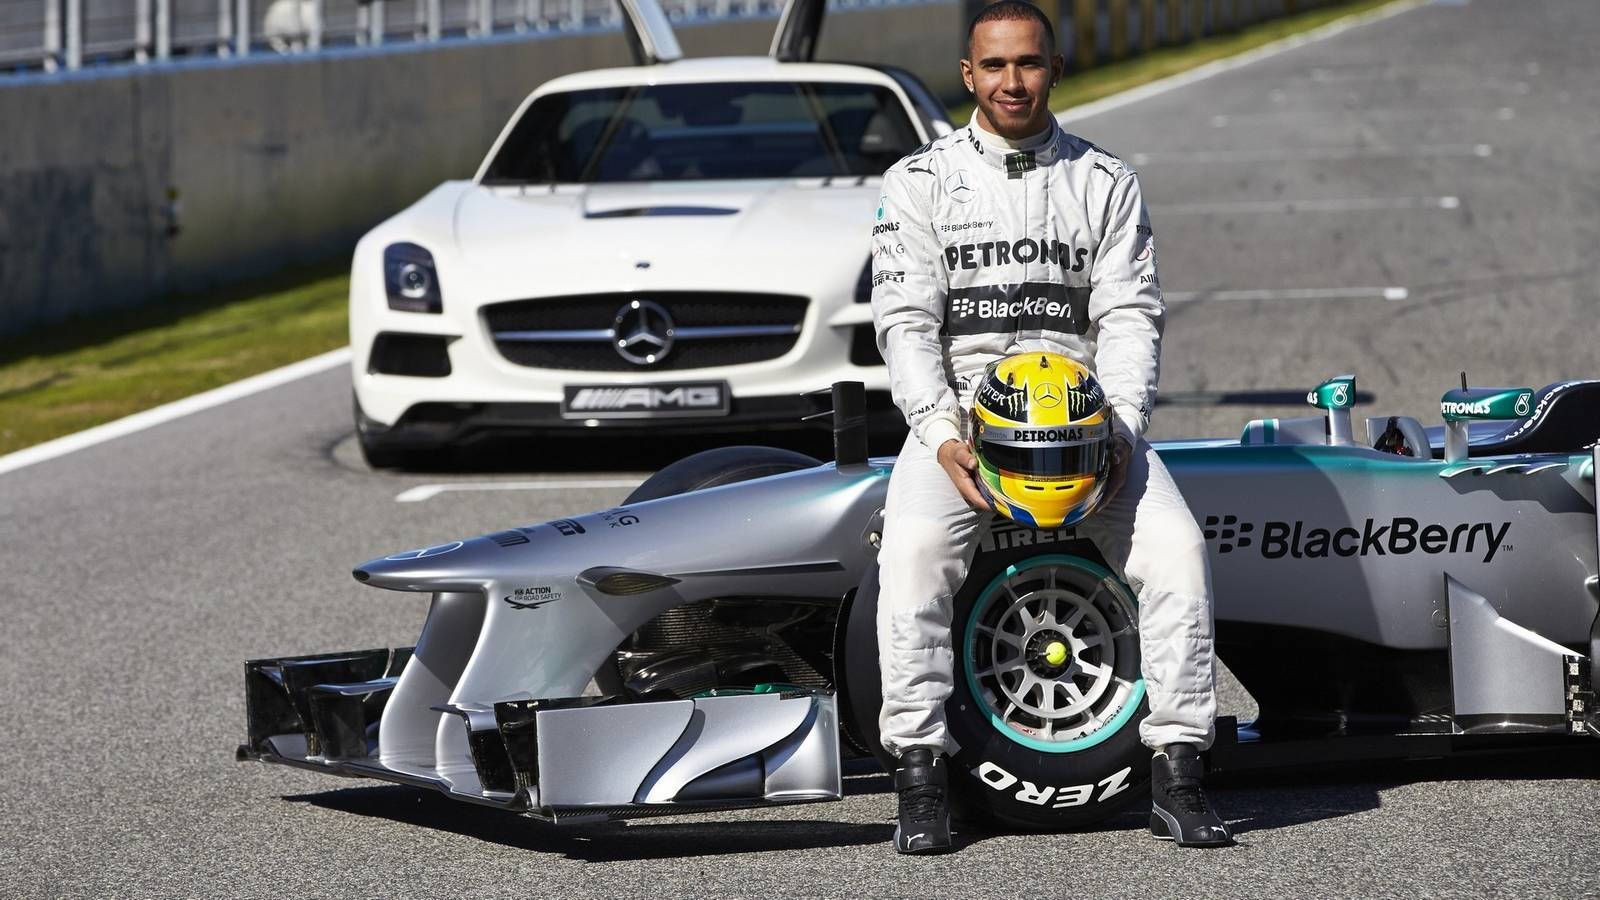 Why Lewis Hamilton Makes Top Dollar In Formula 1